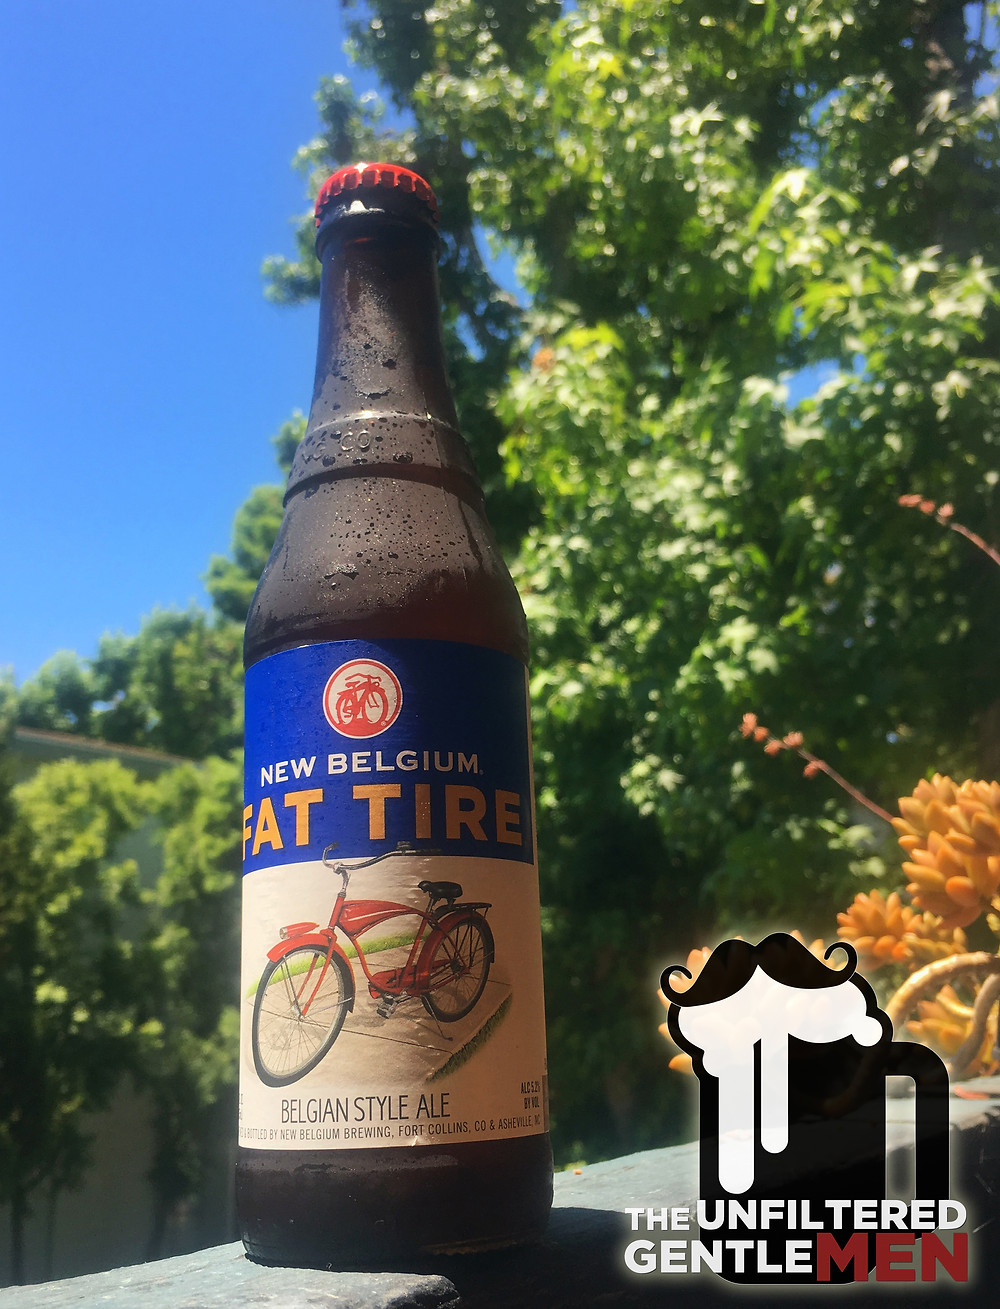 The Unfiltered Gentlemen drinking and reviewing New Belgium's Fat Tire